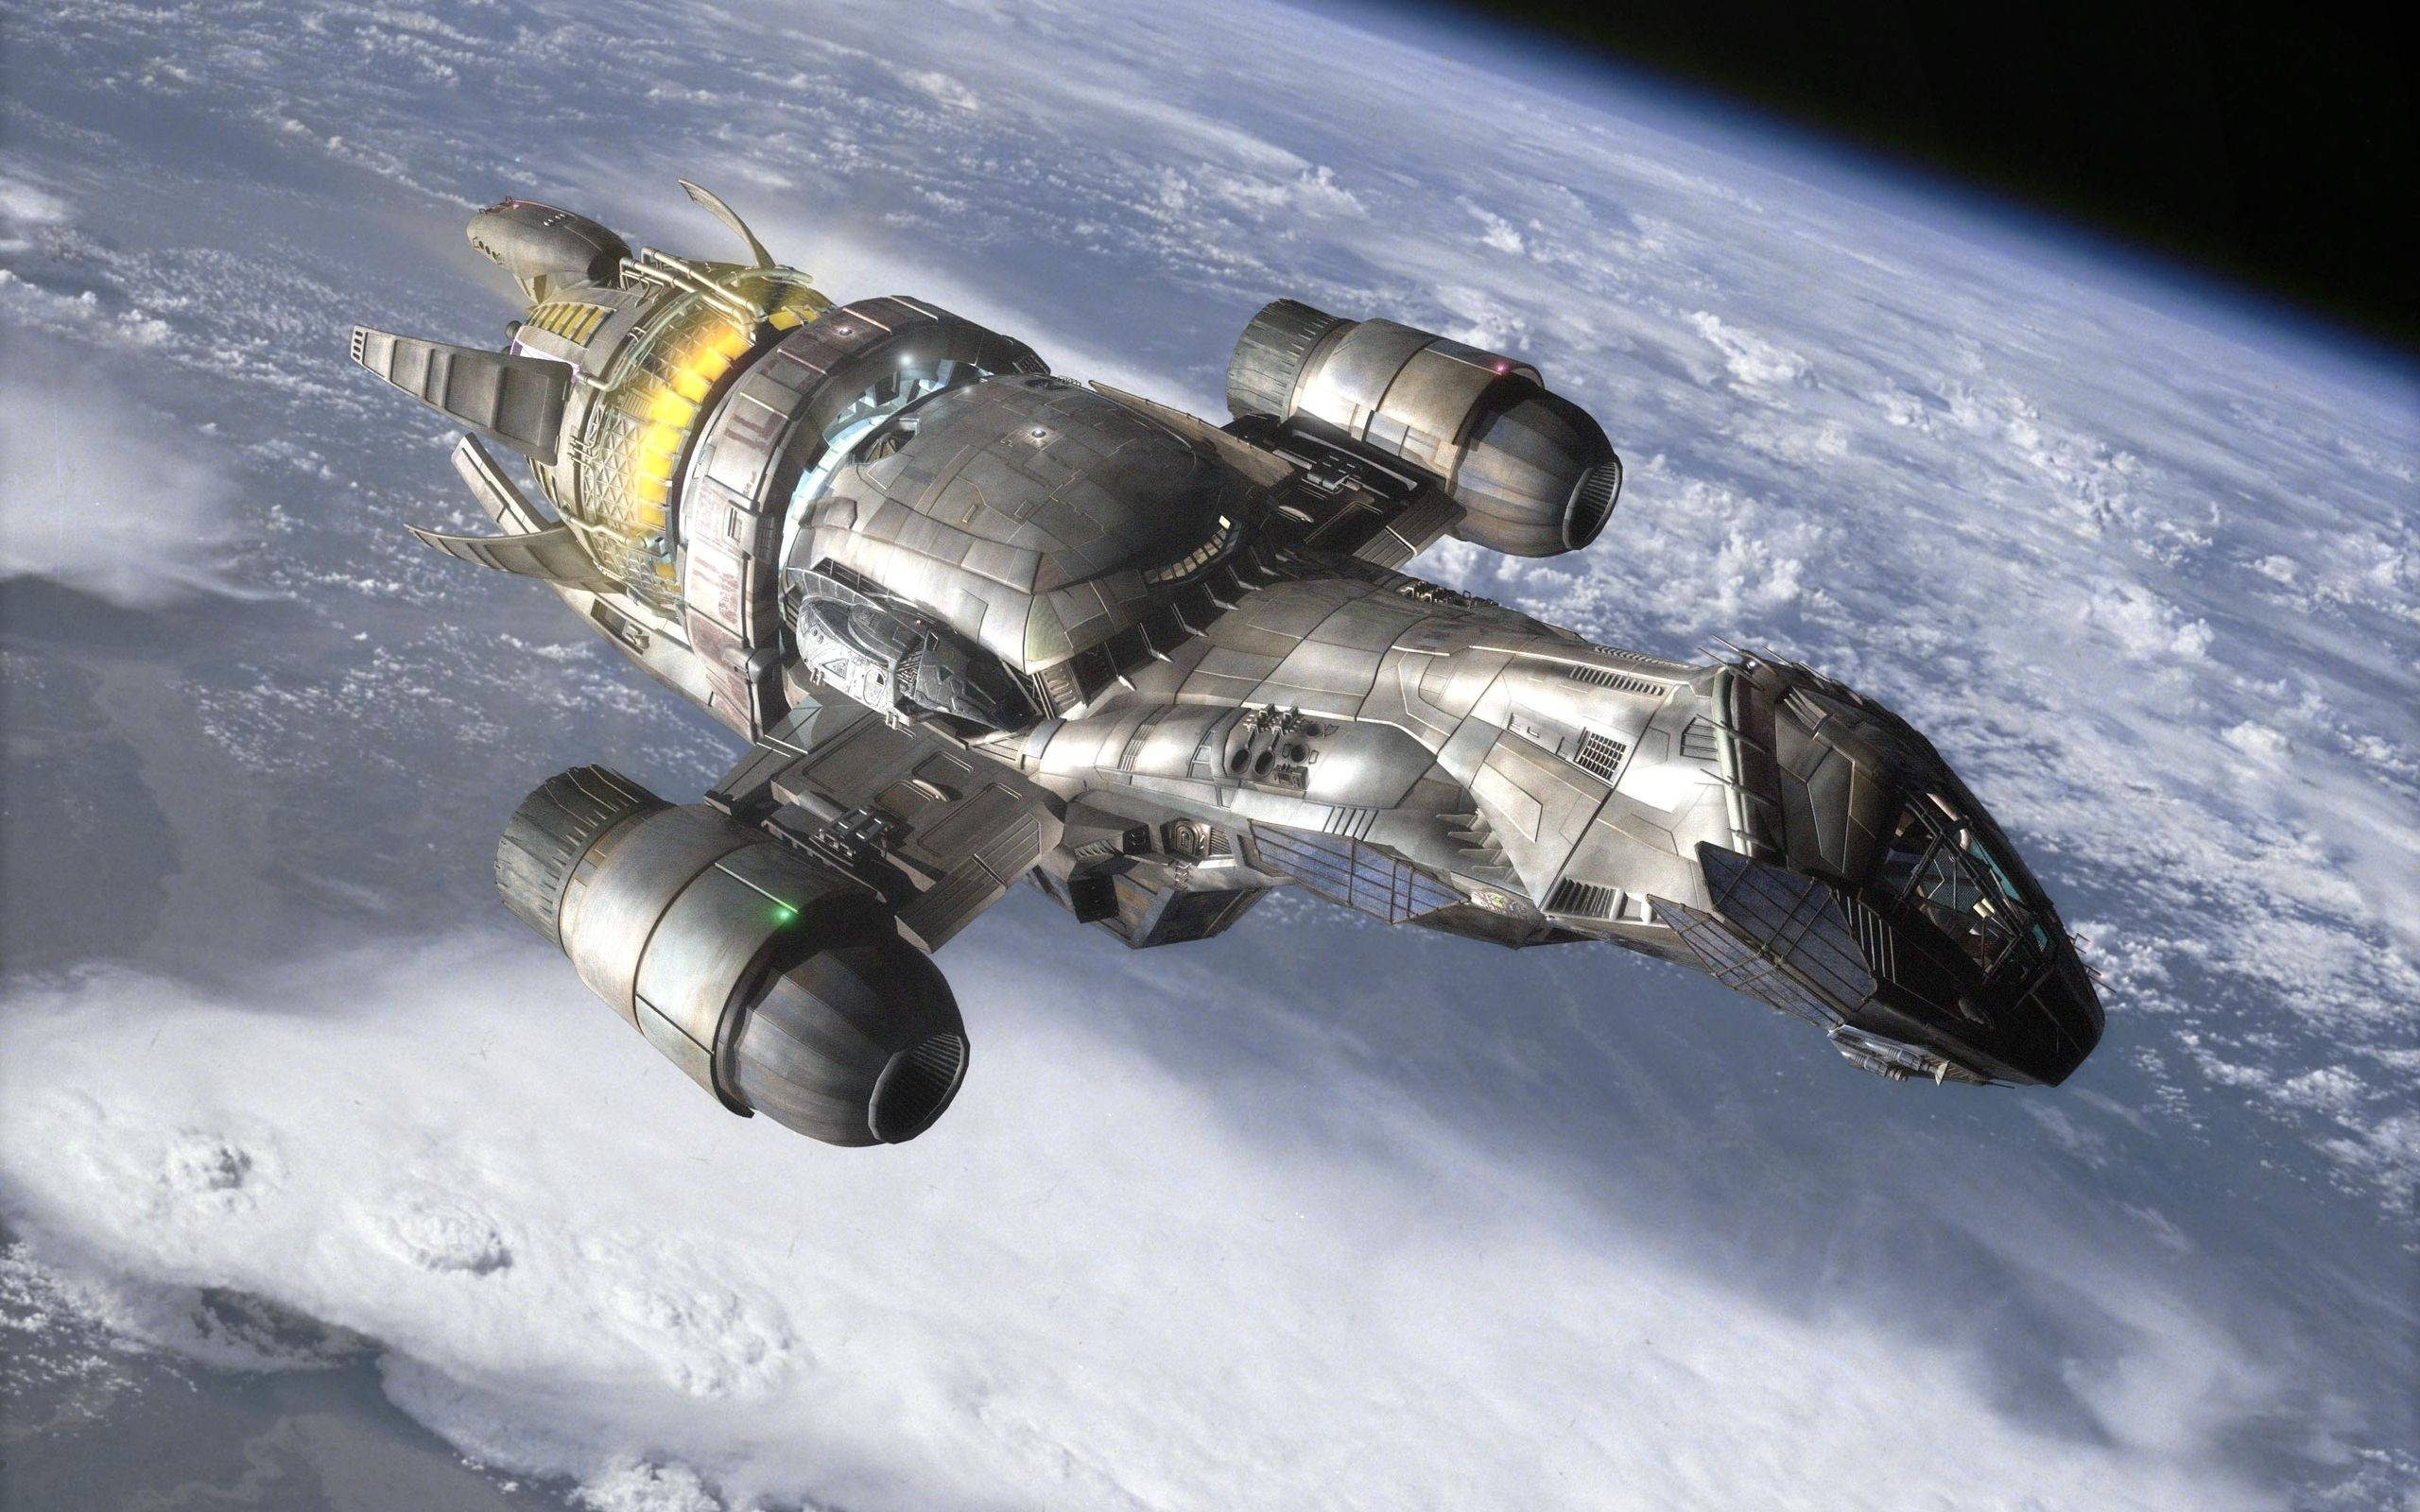 serenity firefly spaceships vehicles HD Wallpaper